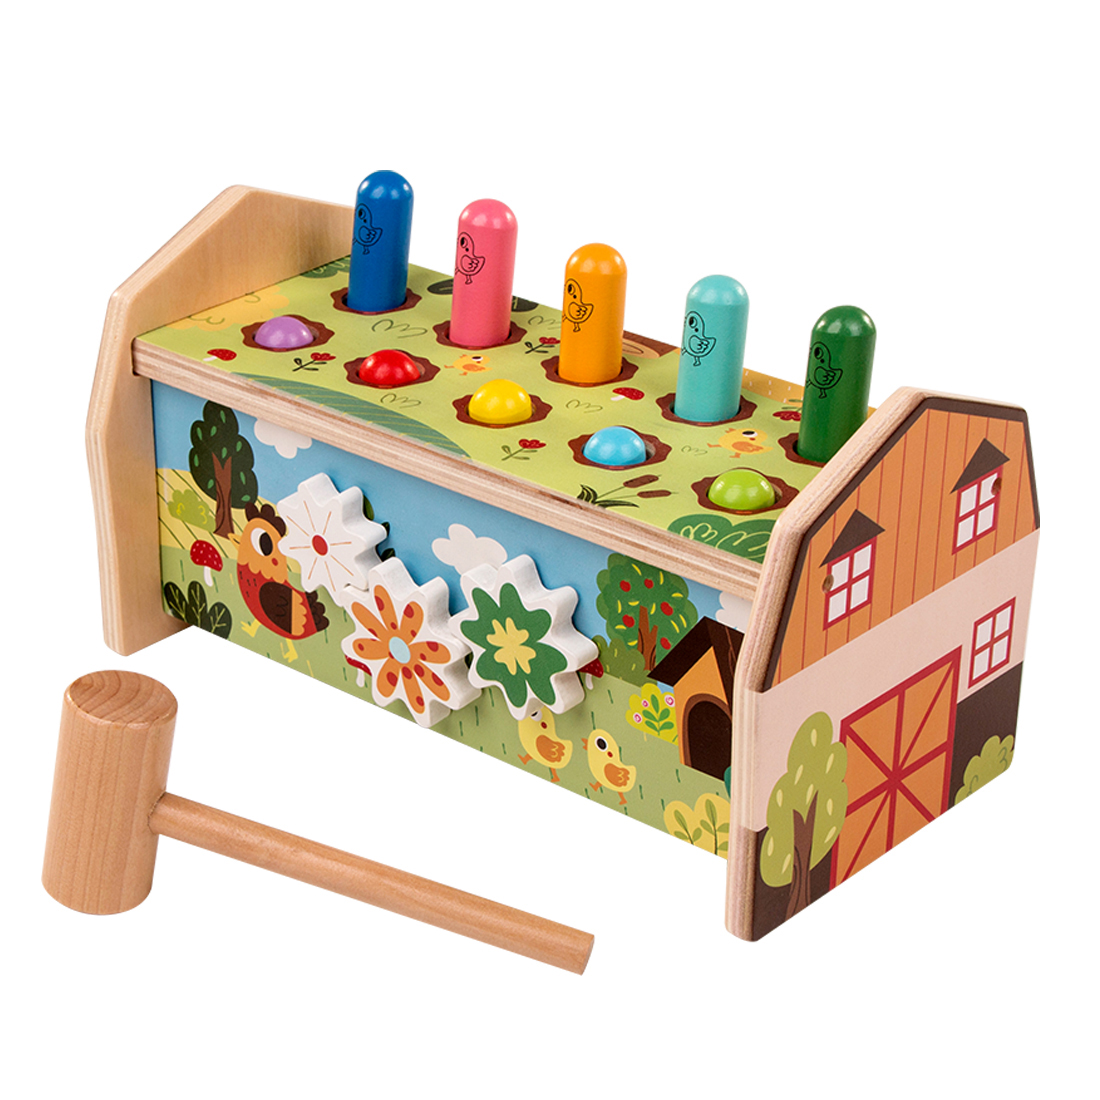 Children Wooden Whac-A-Mole Toy Hammering Toy Multifunctional Educational Toy Christmas Birthday Gift - Forest Type/Ocean Type